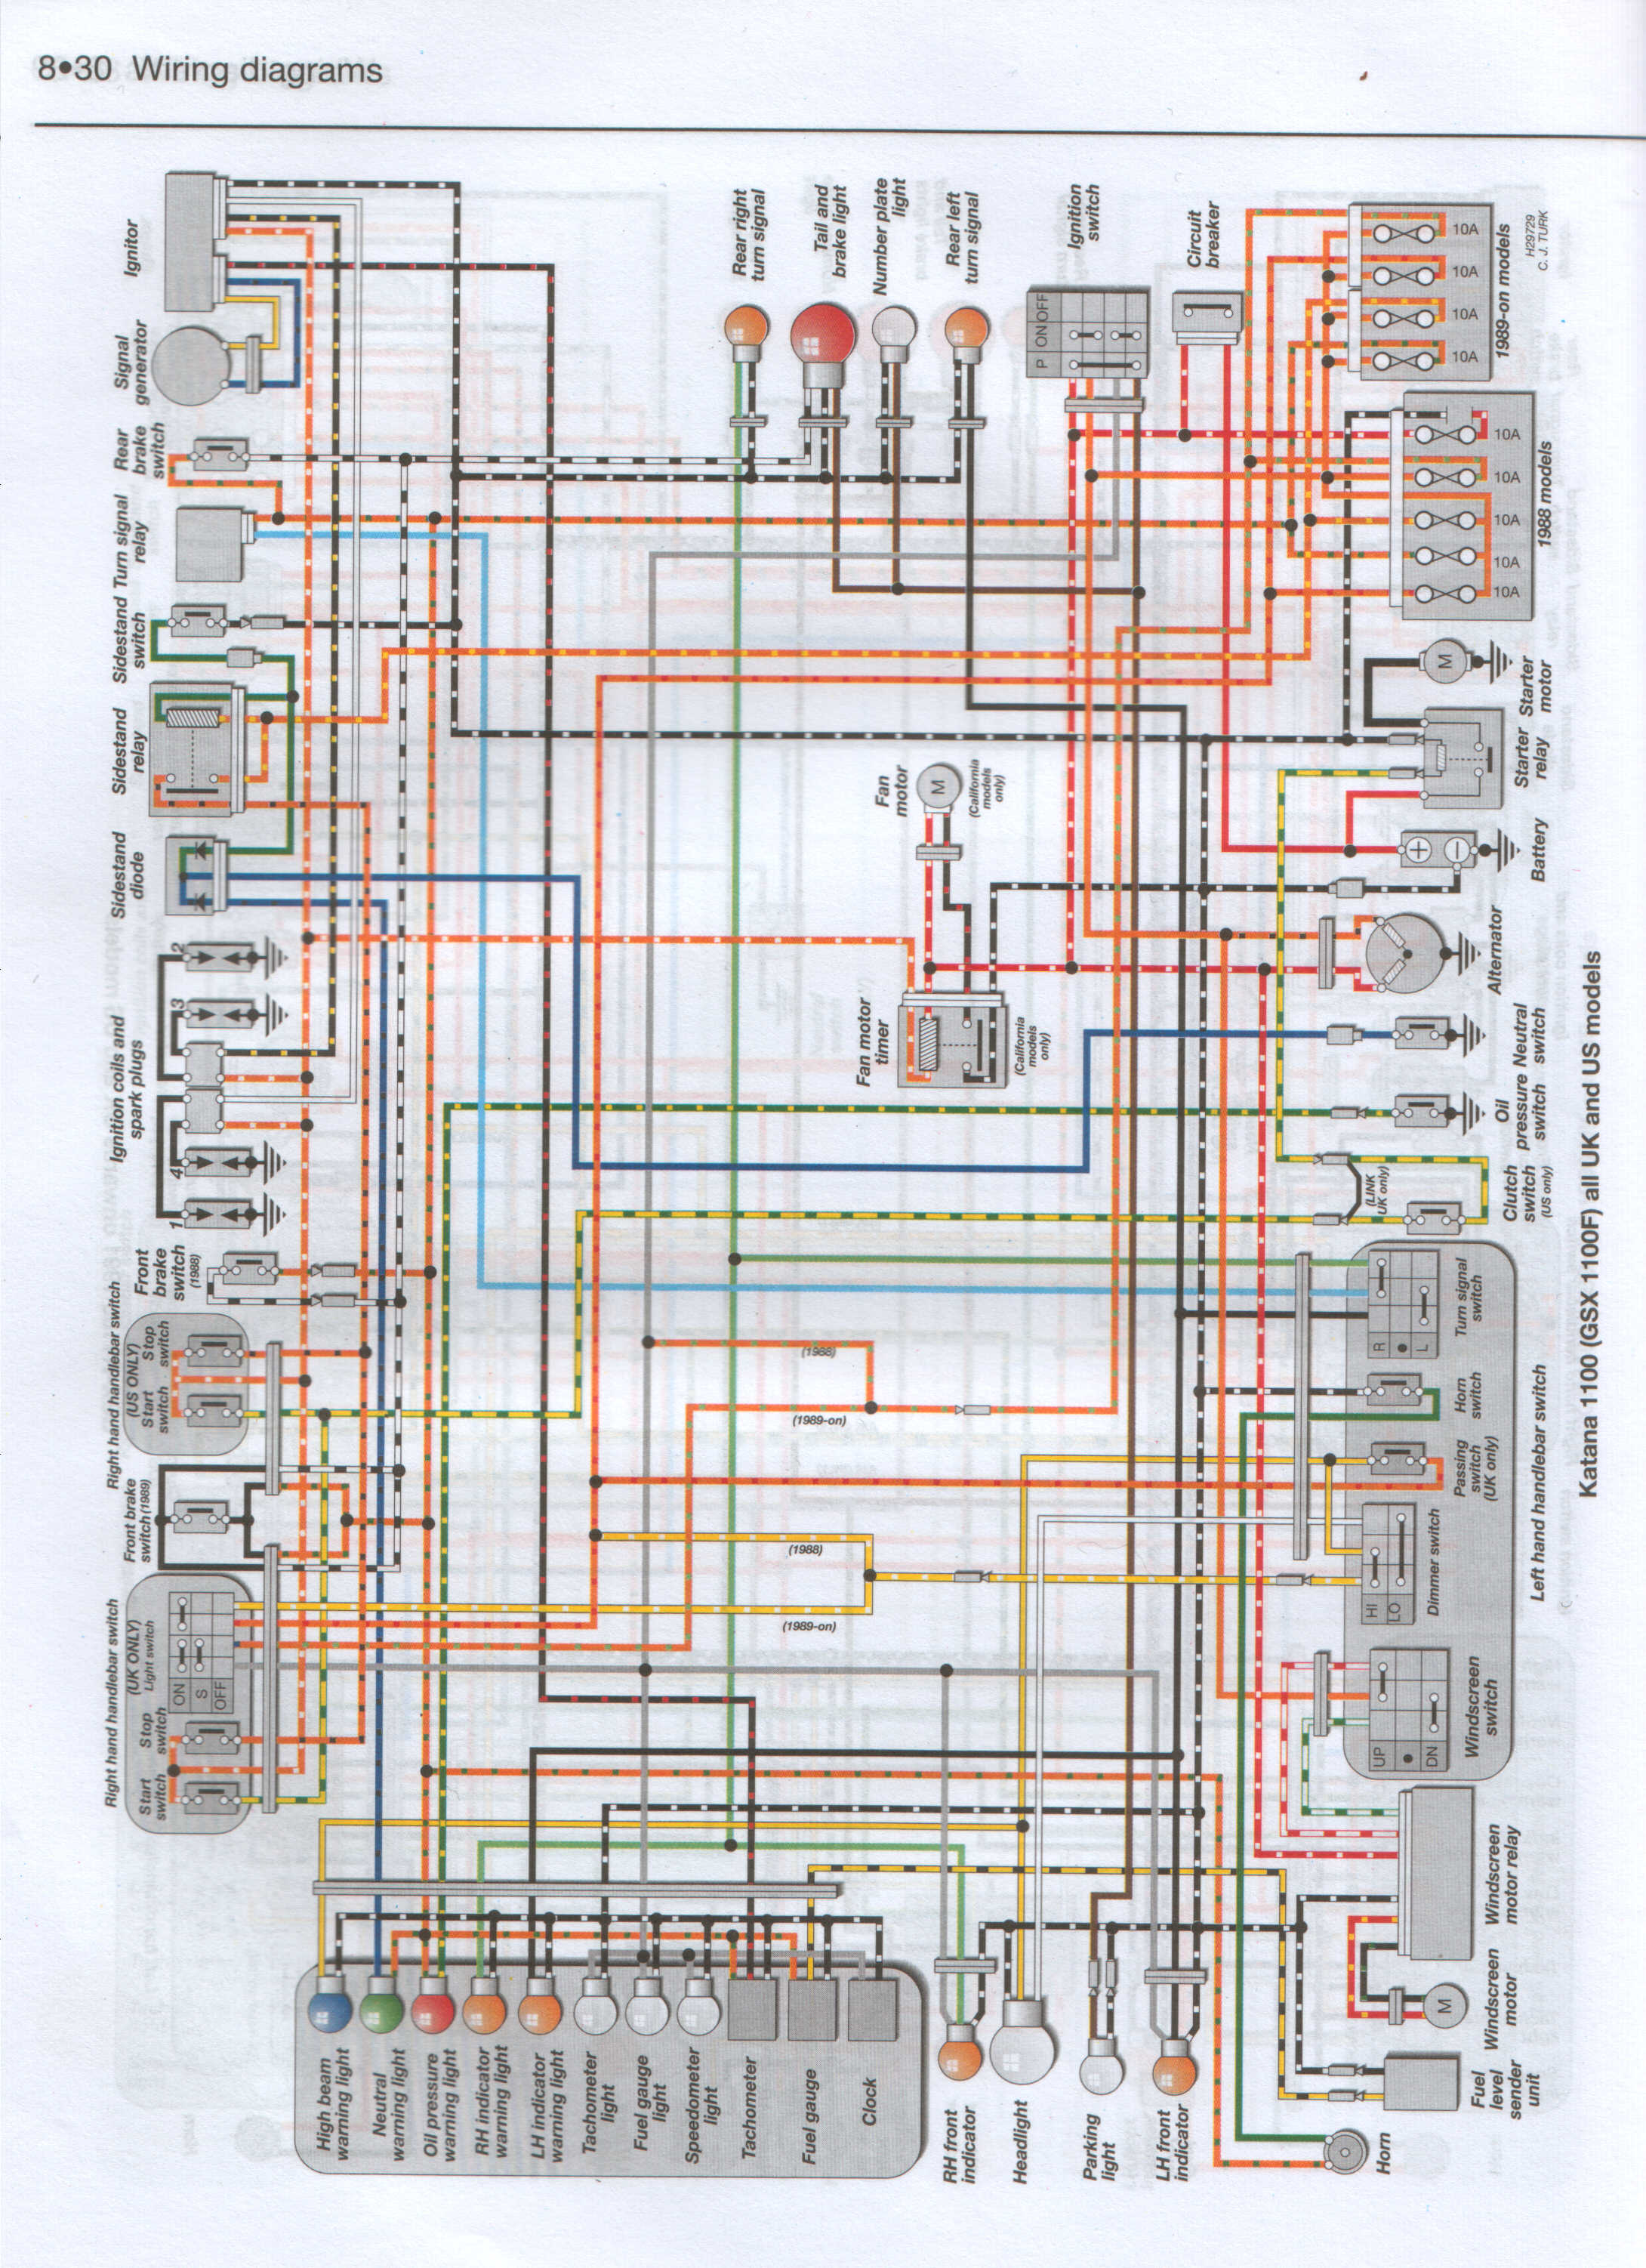 22_1275754339 gsxr 750 wiring diagram efcaviation com 1998 gsxr 750 srad wiring diagram at virtualis.co